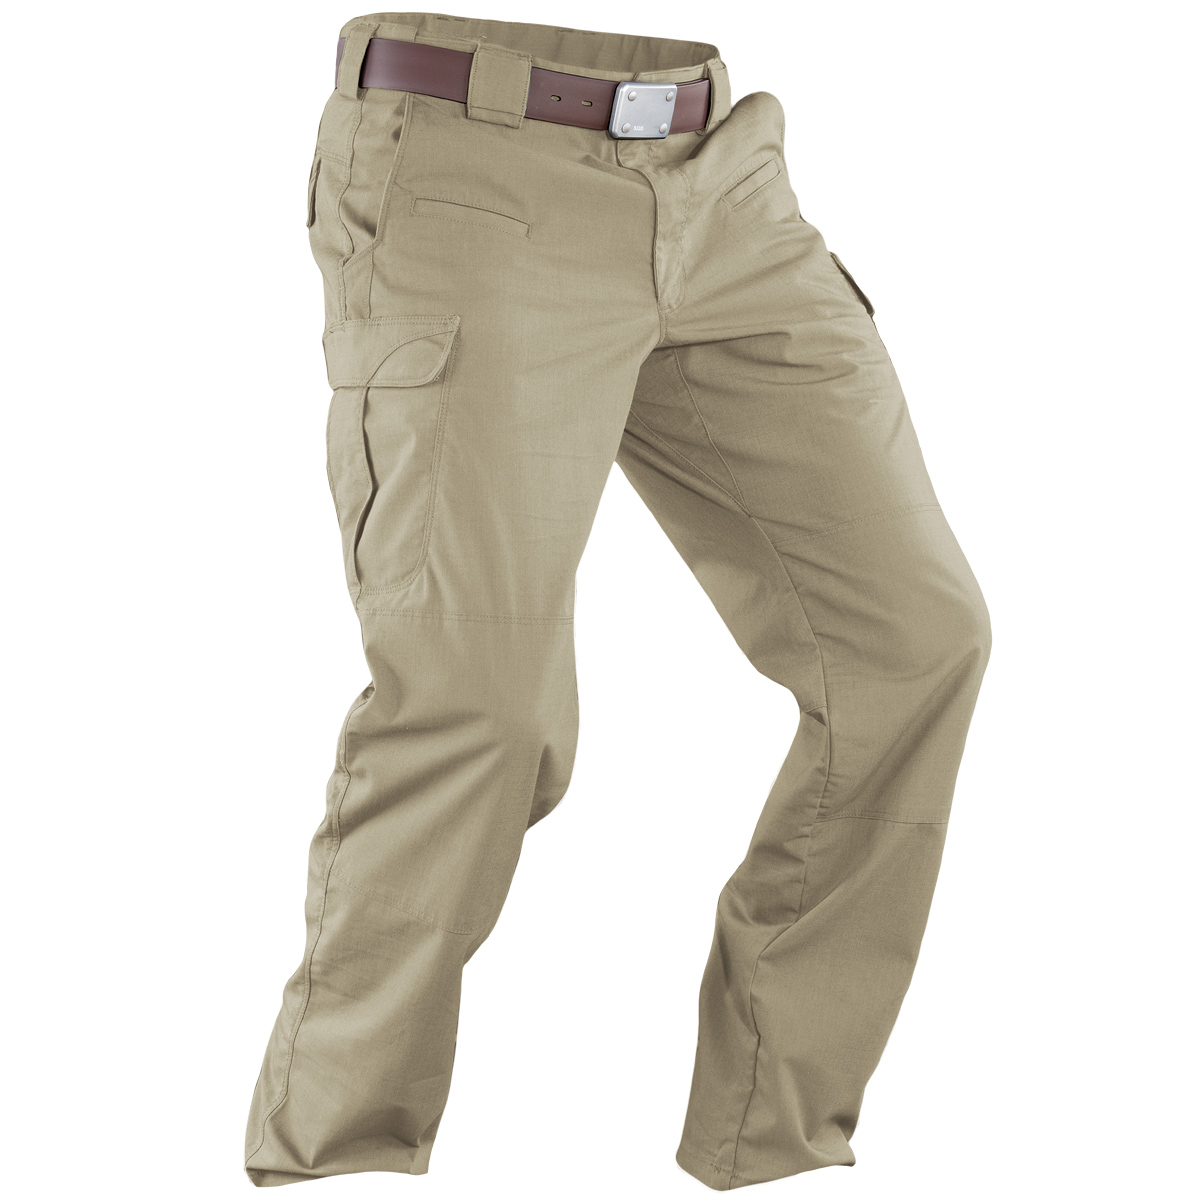 How to take care of Khaki trousers